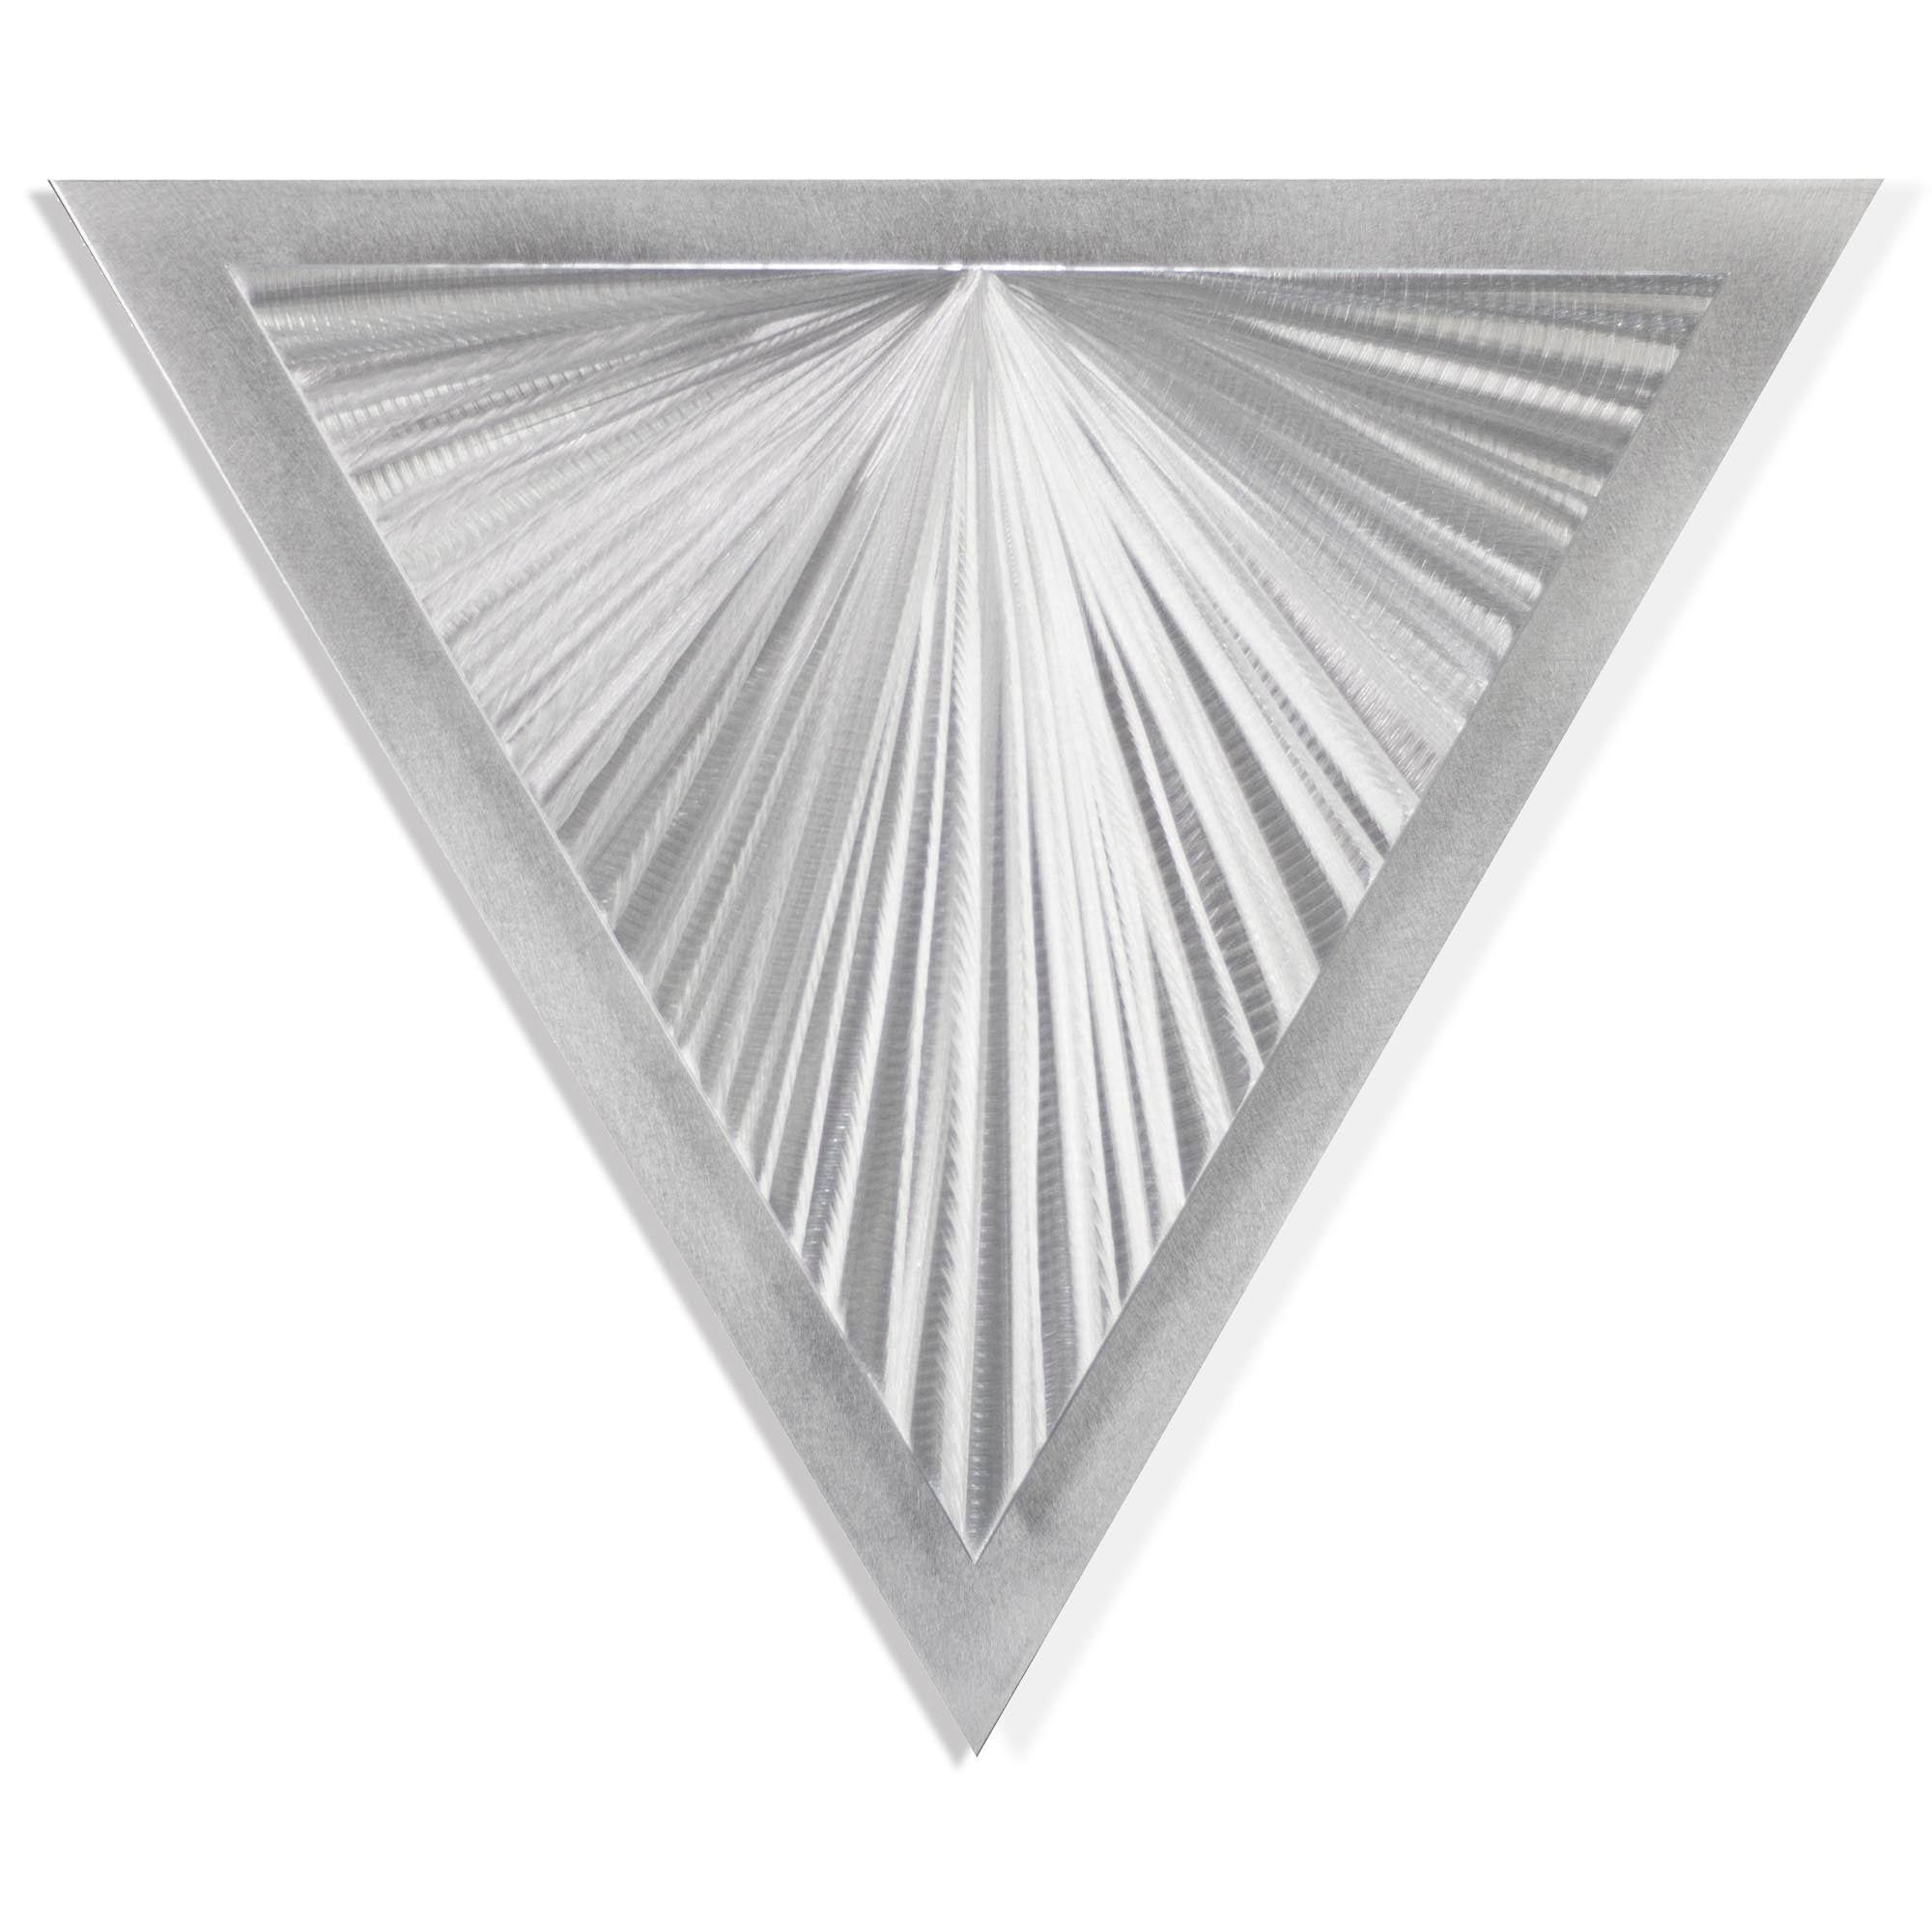 Shining Angle by Helena Martin - Modern Metal Art on Ground Metal